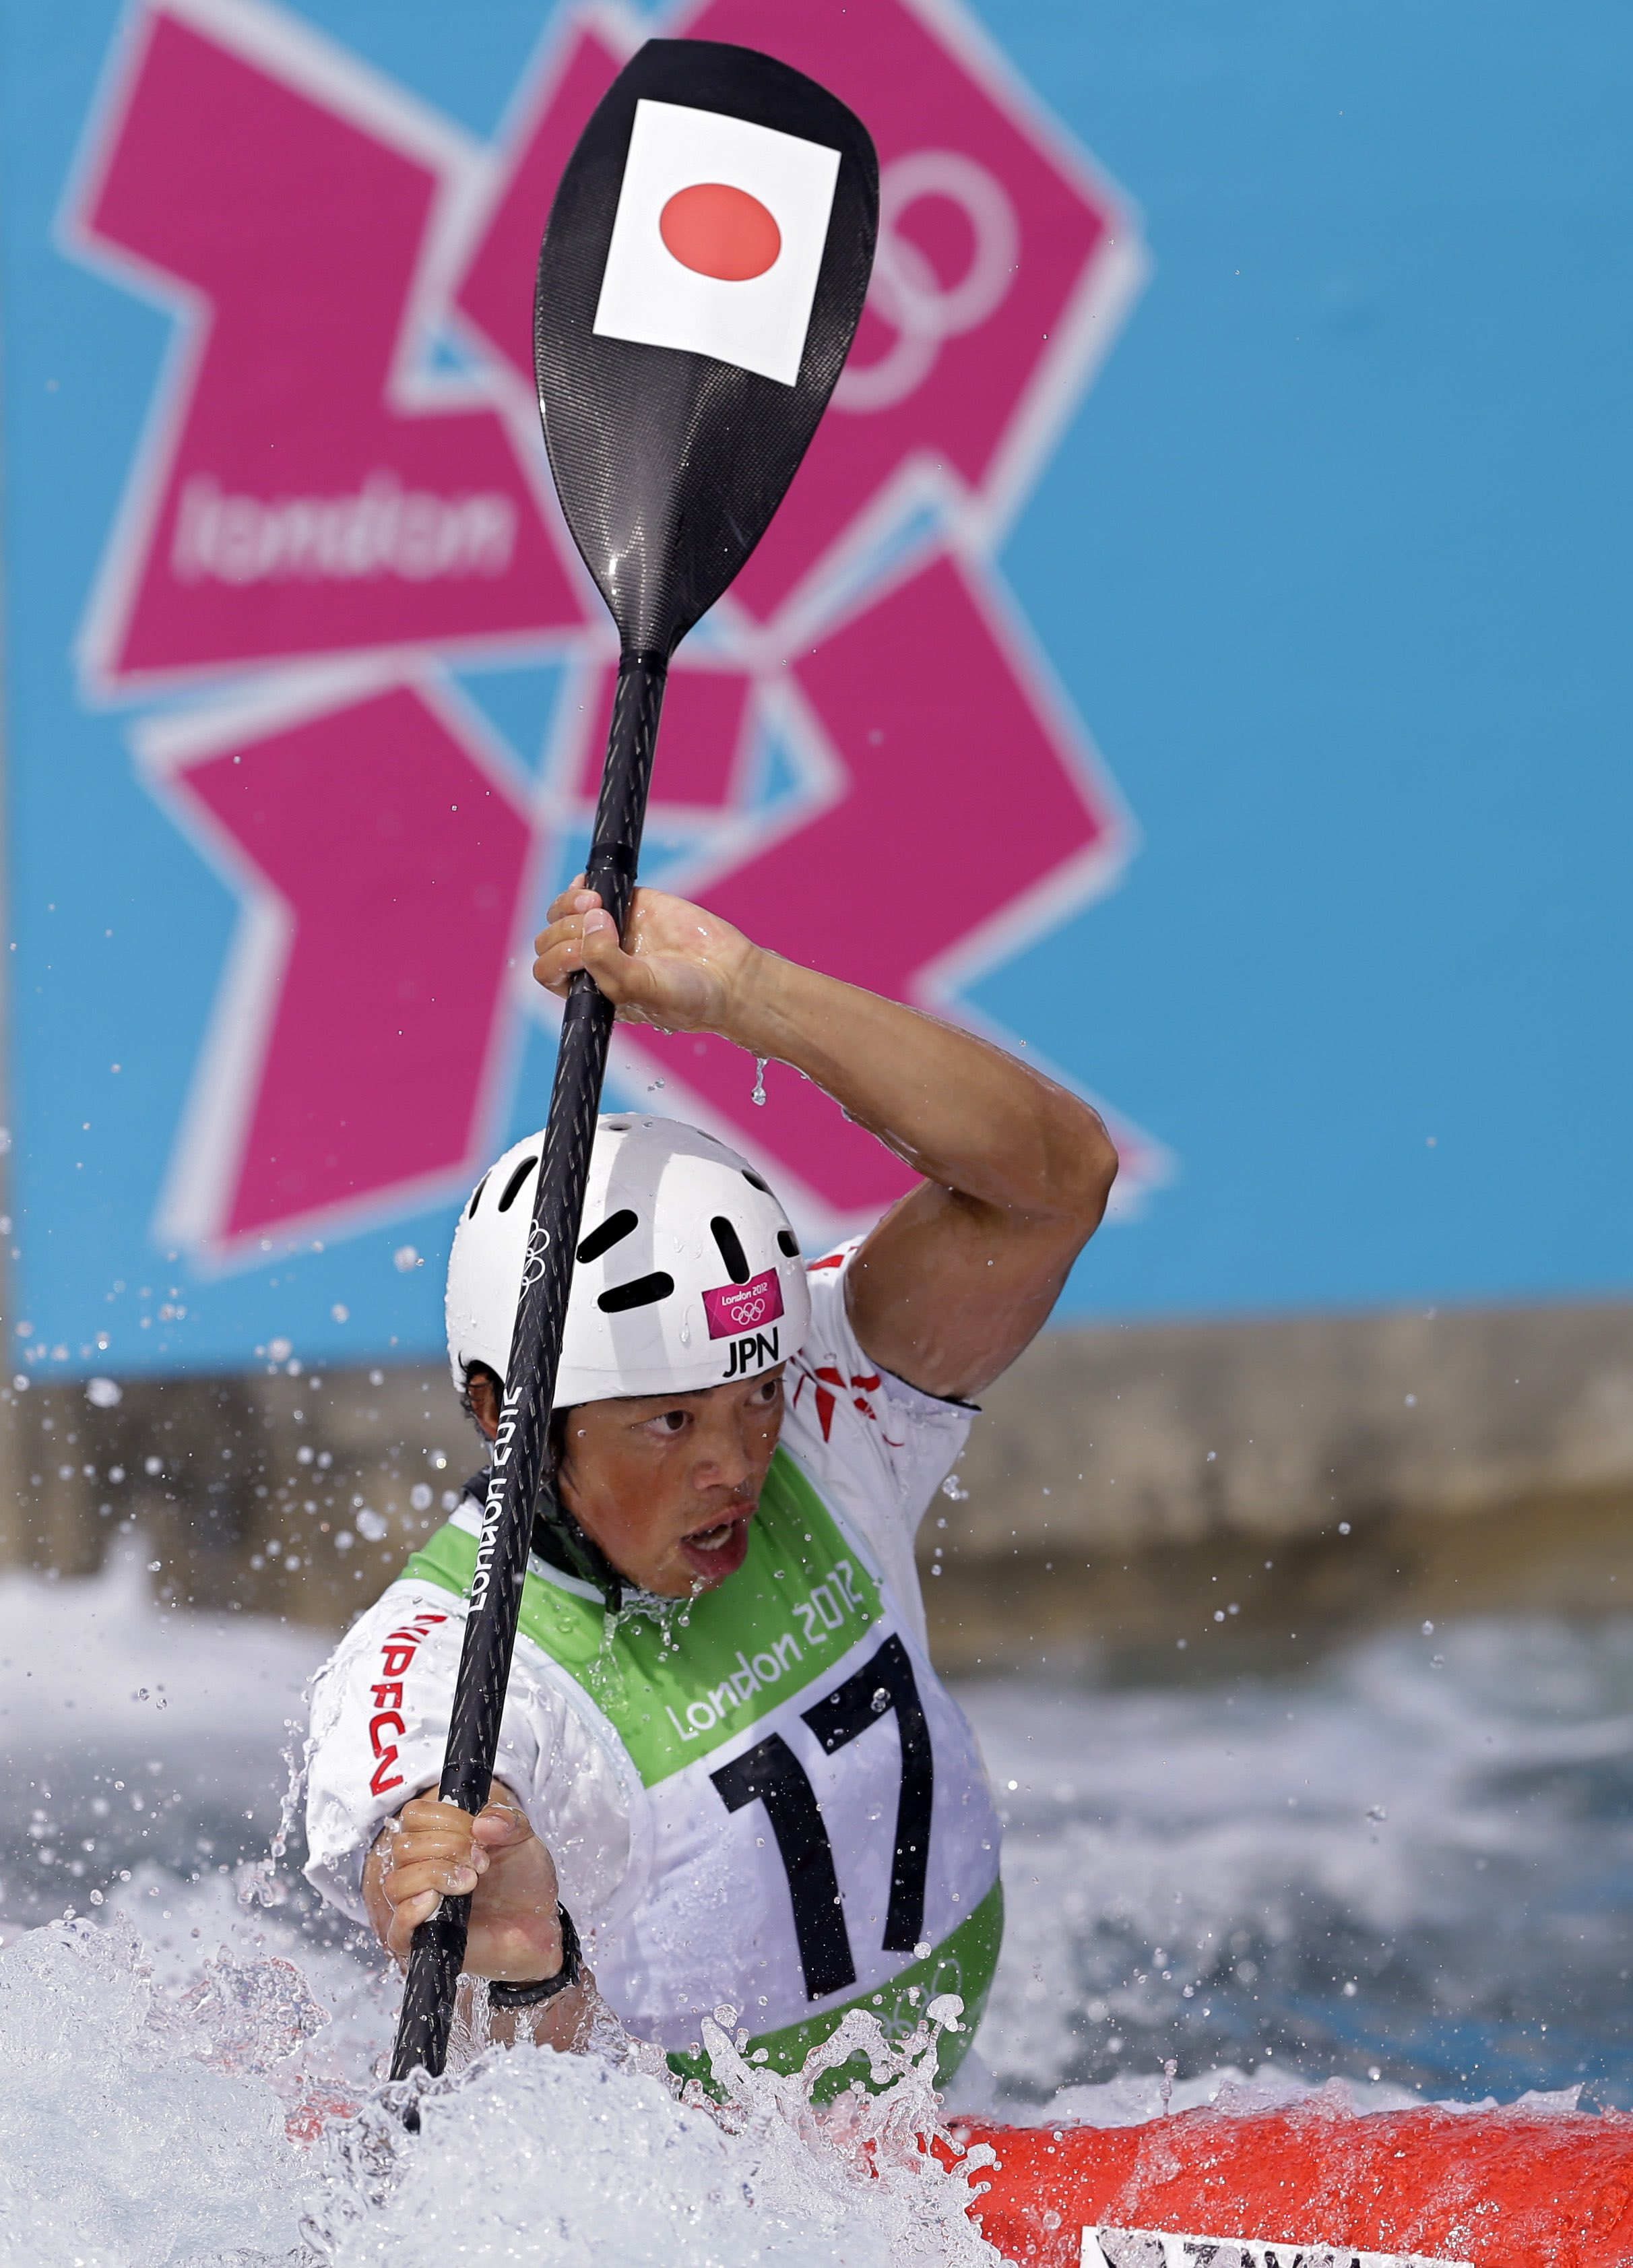 at the Lee Valley White Water Center ahead of the 2012 Summer Olympics, Sunday, July 29, 2012, in London. (AP Photo/Victor R. Caivano)